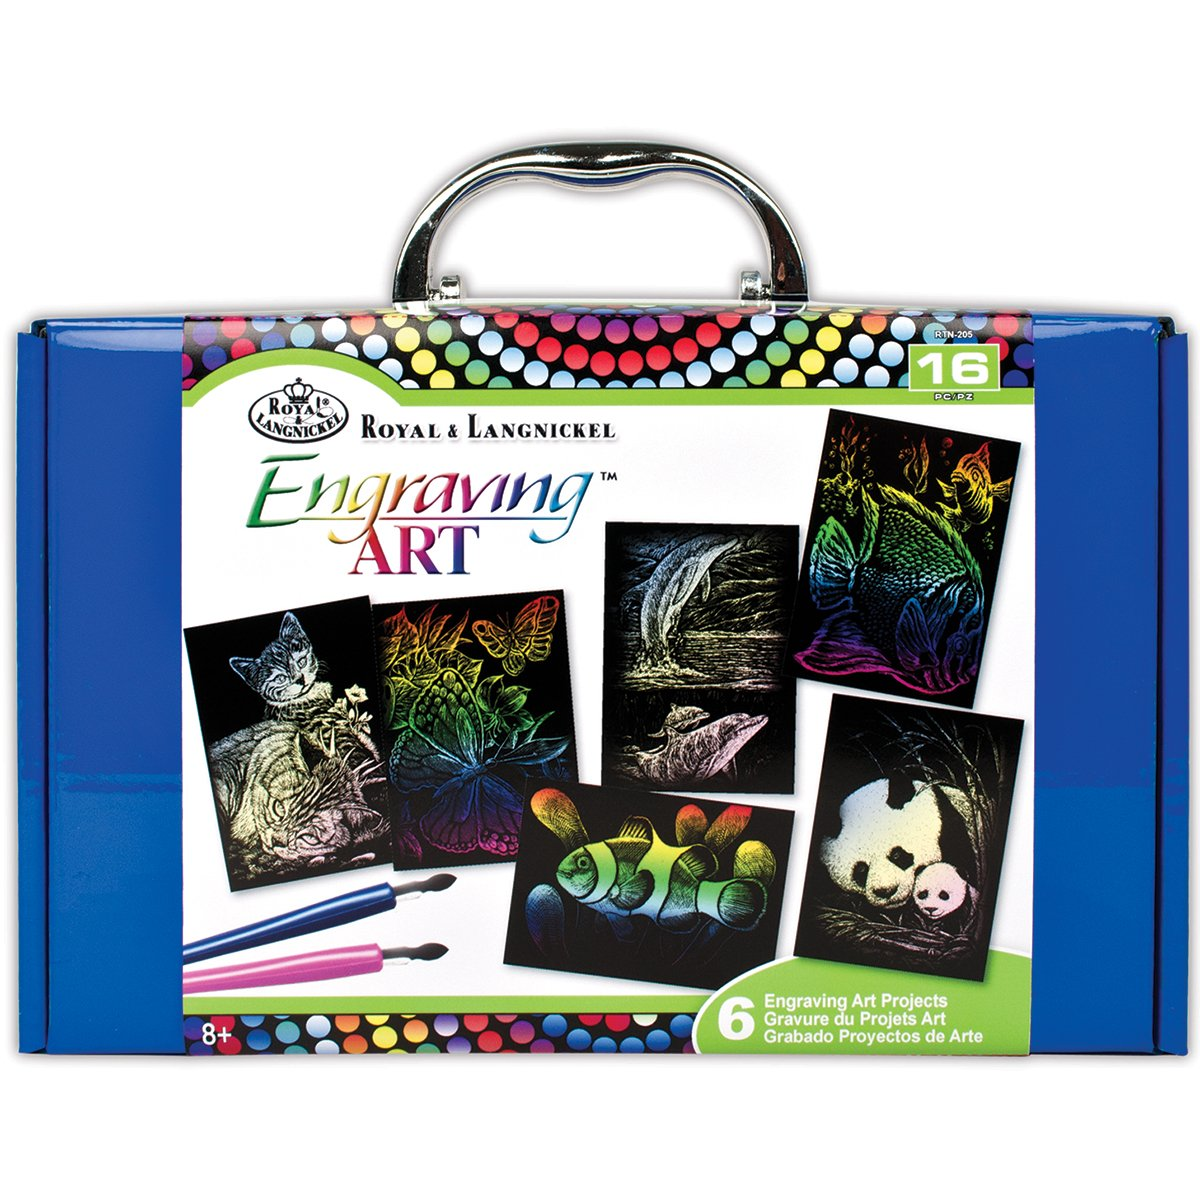 ROYAL BRUSH RTN-205 Engraving Art Kit Royal Langnickel